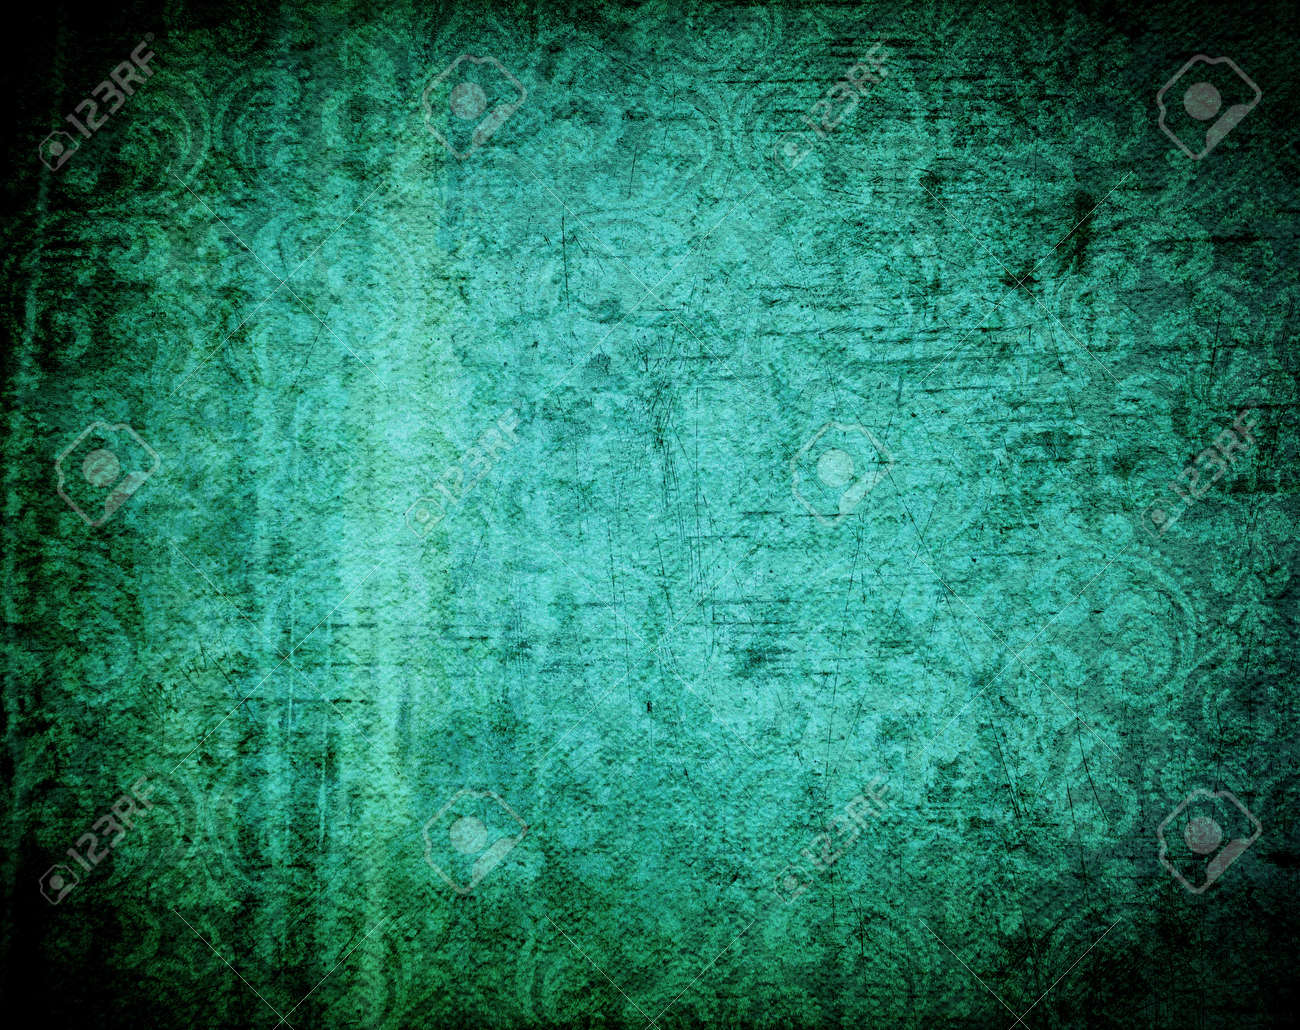 Beautiful grunge background with light effect and floral designs Stock Photo - 14973206